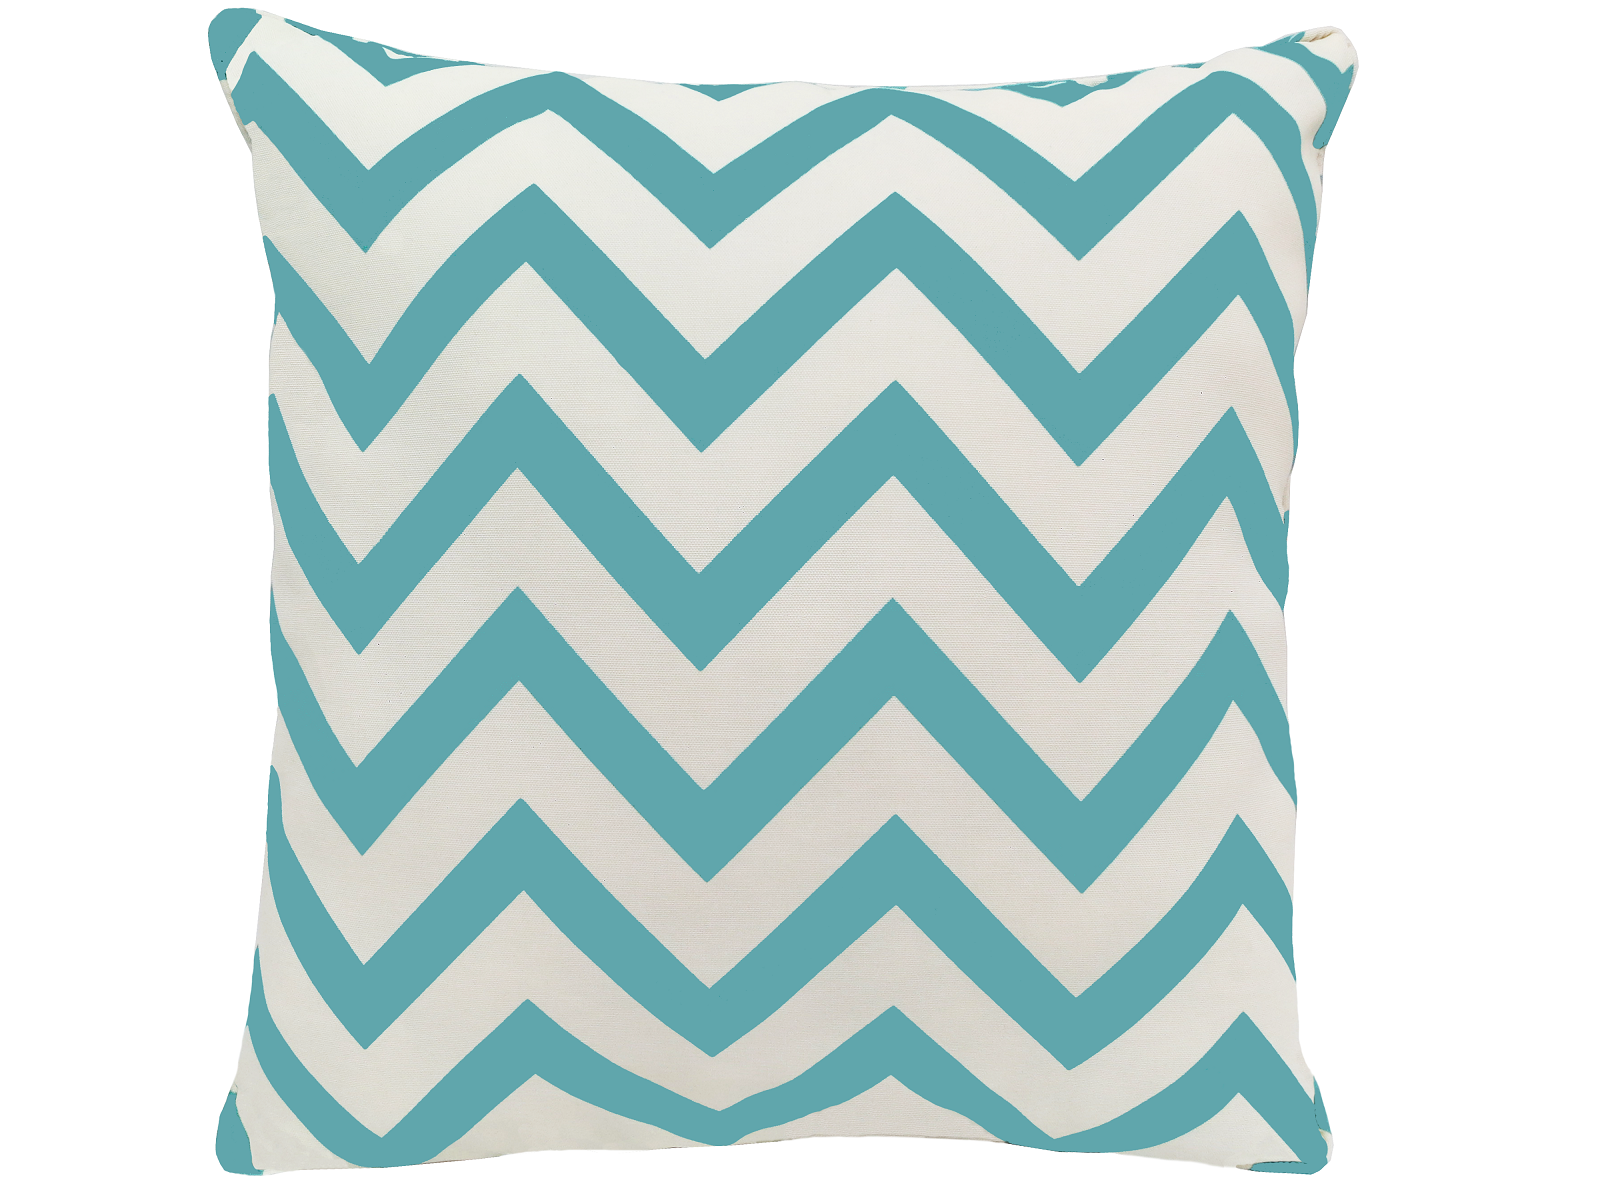 Oahu indoor   outdoor pillow from Rodeo Home | Pillows | Pinterest ...